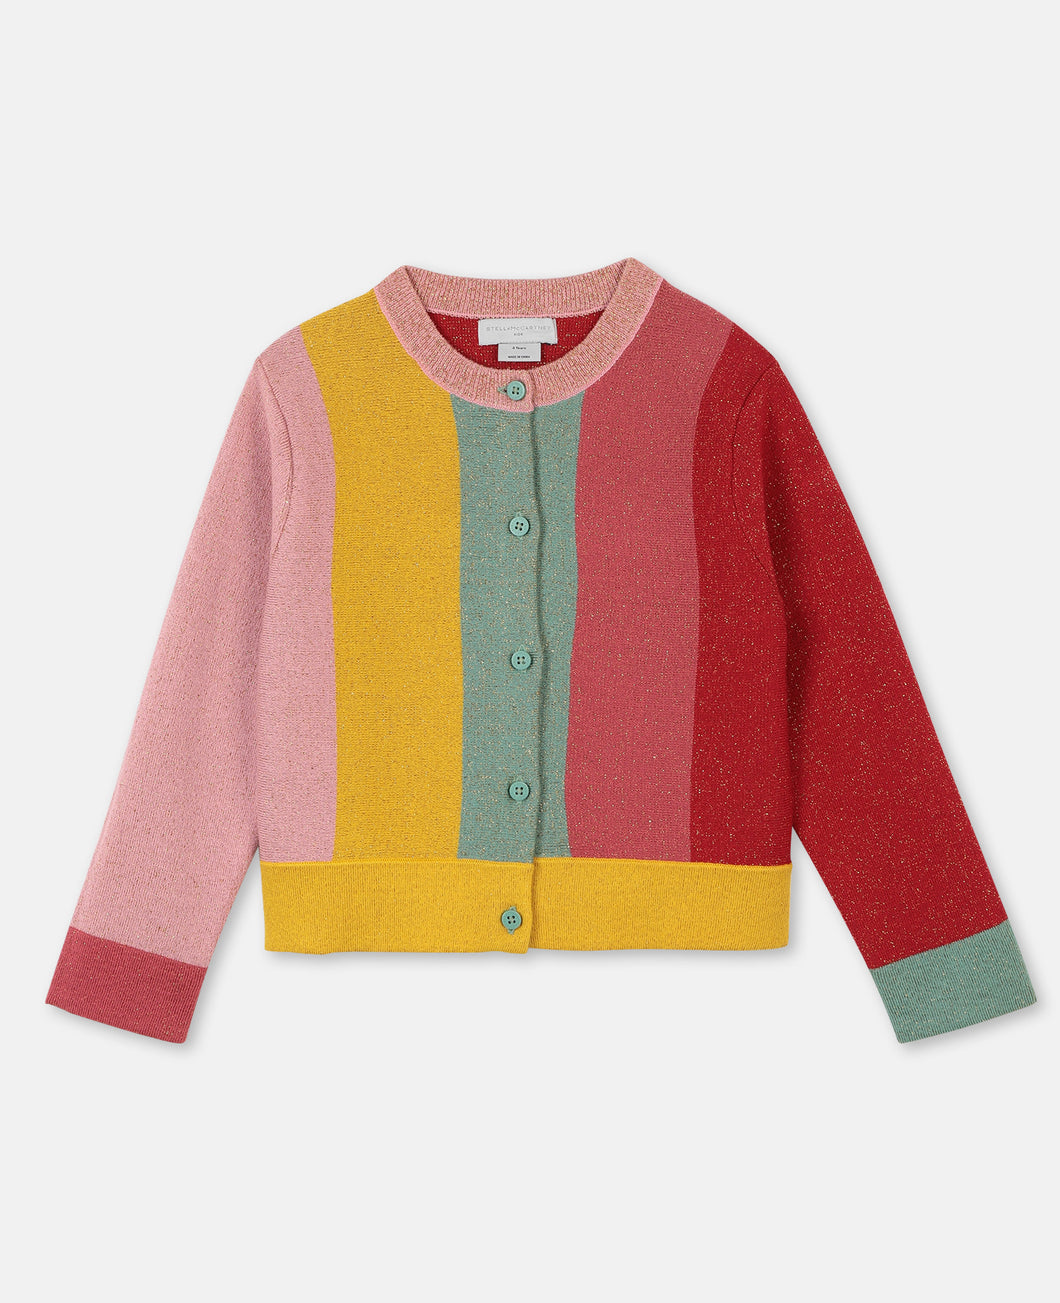 Lurex Knit SMC Cardigan